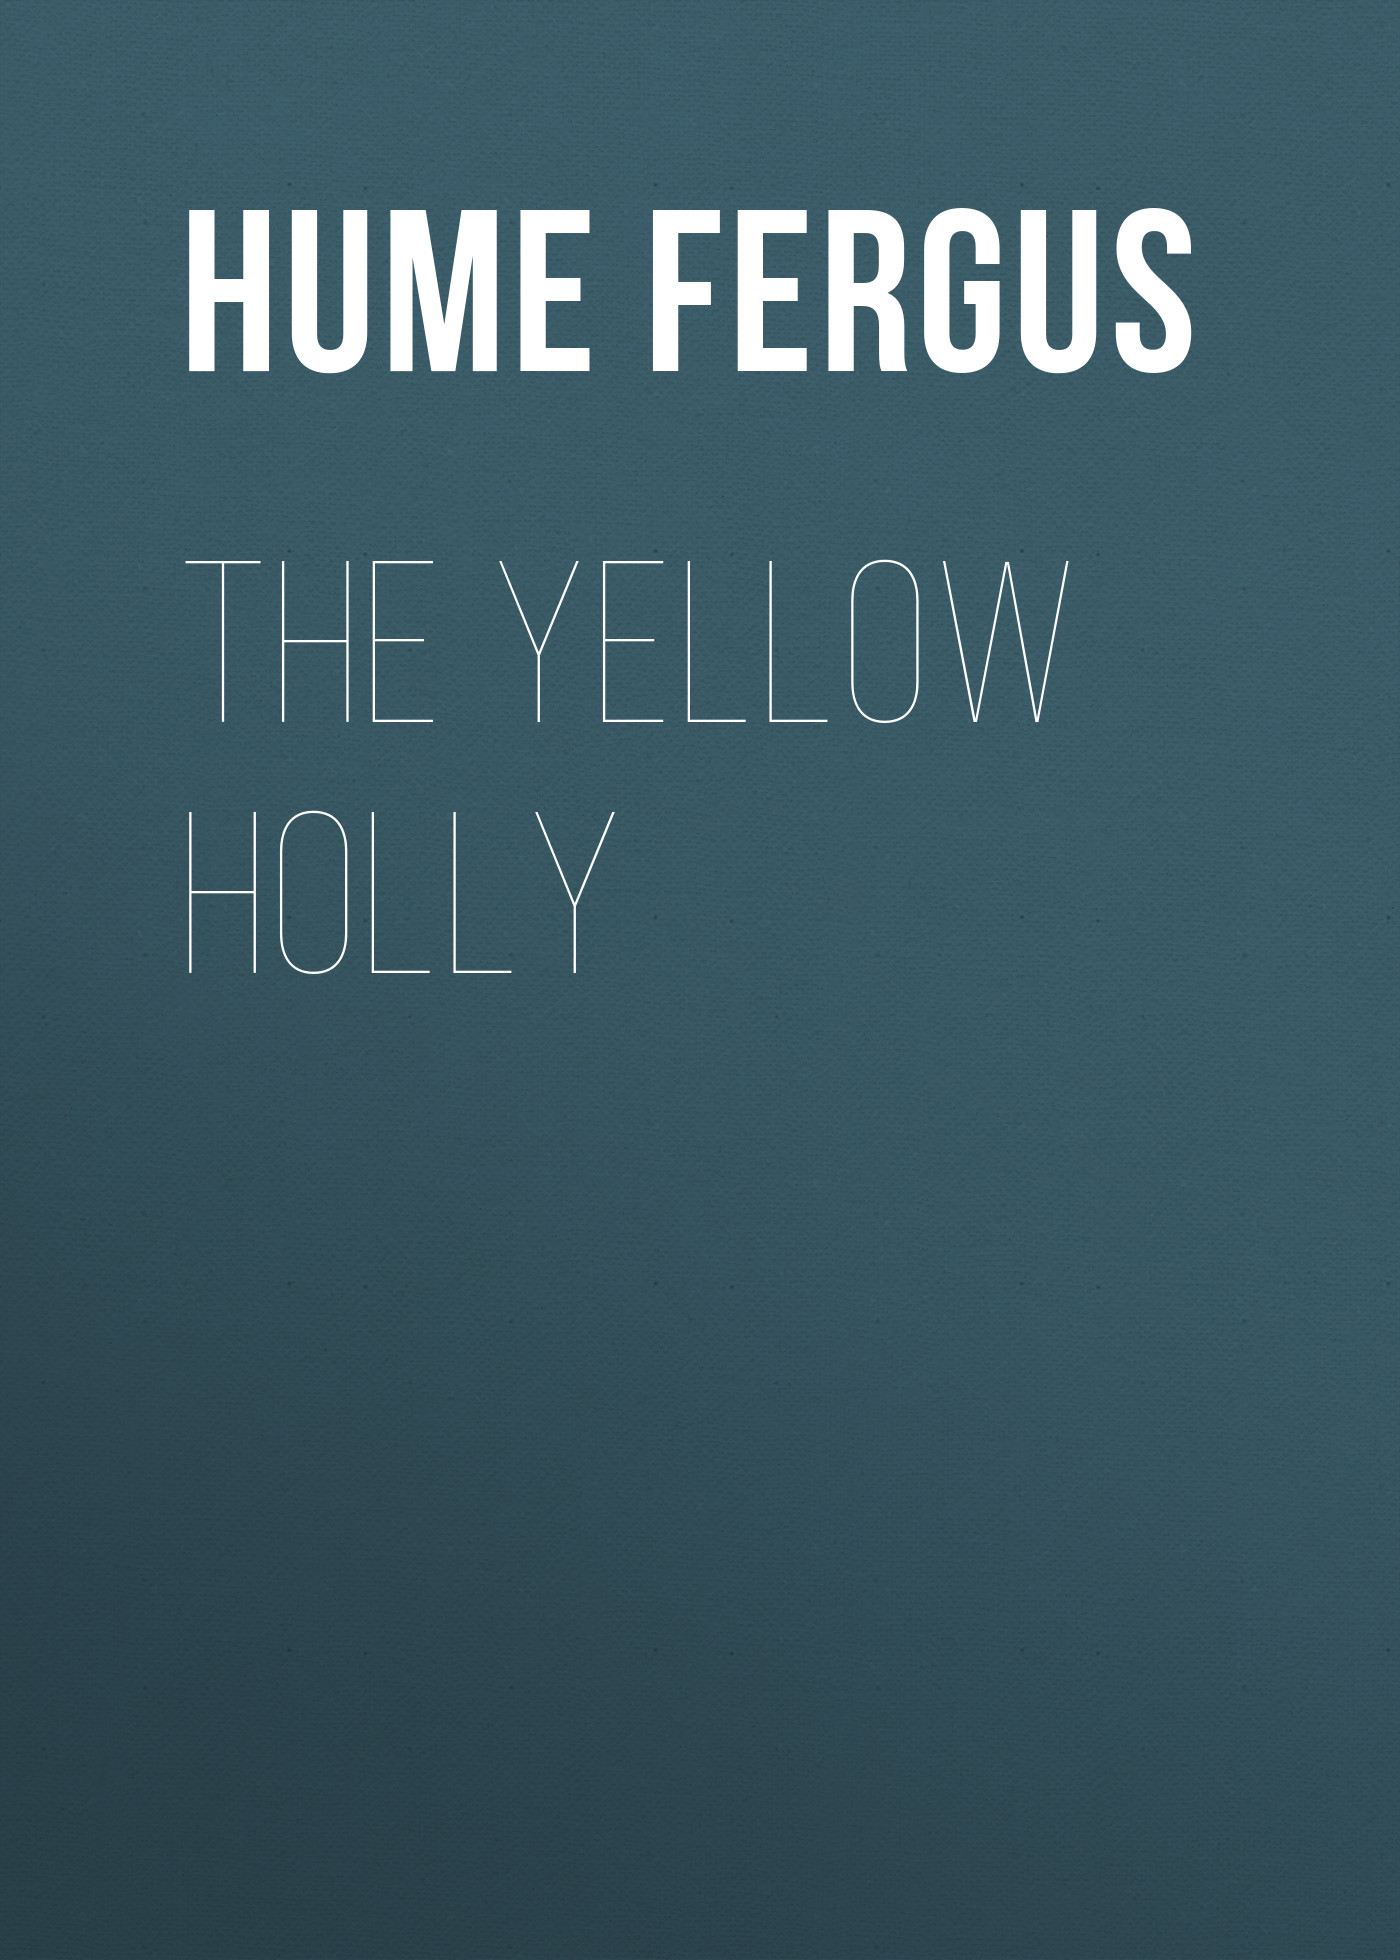 Hume Fergus The Yellow Holly цена